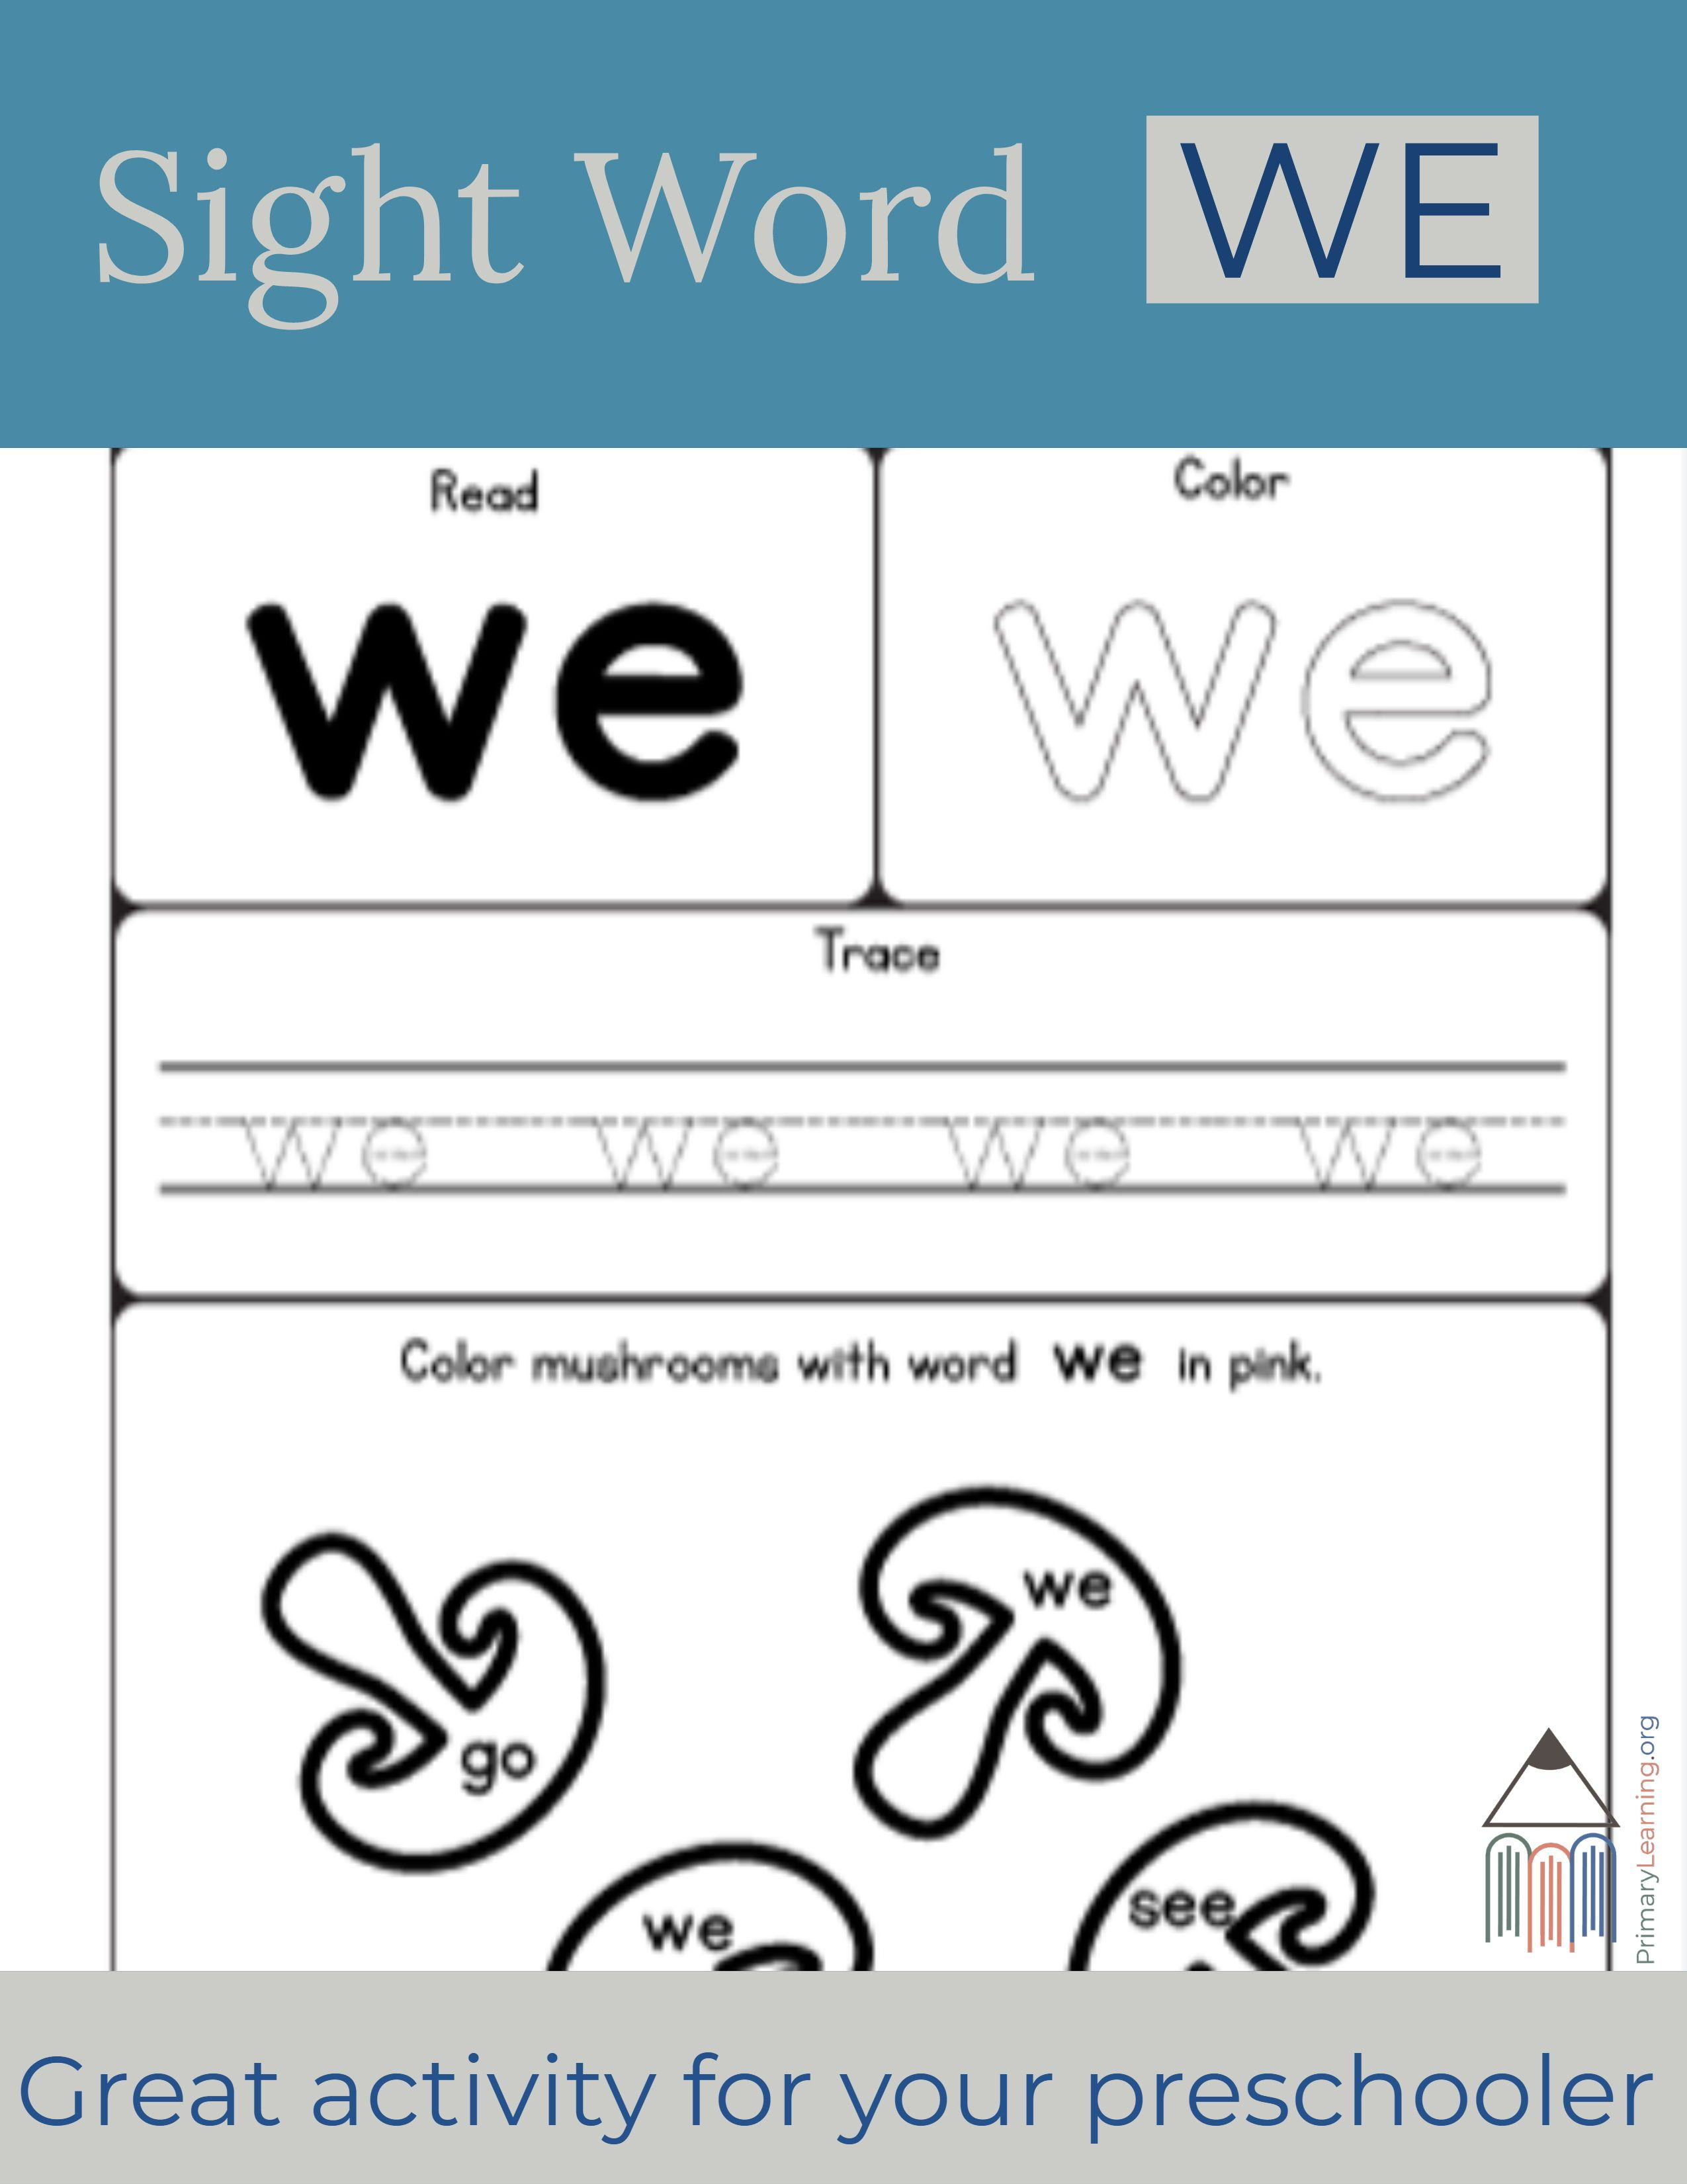 Sight Word We Worksheet With Images